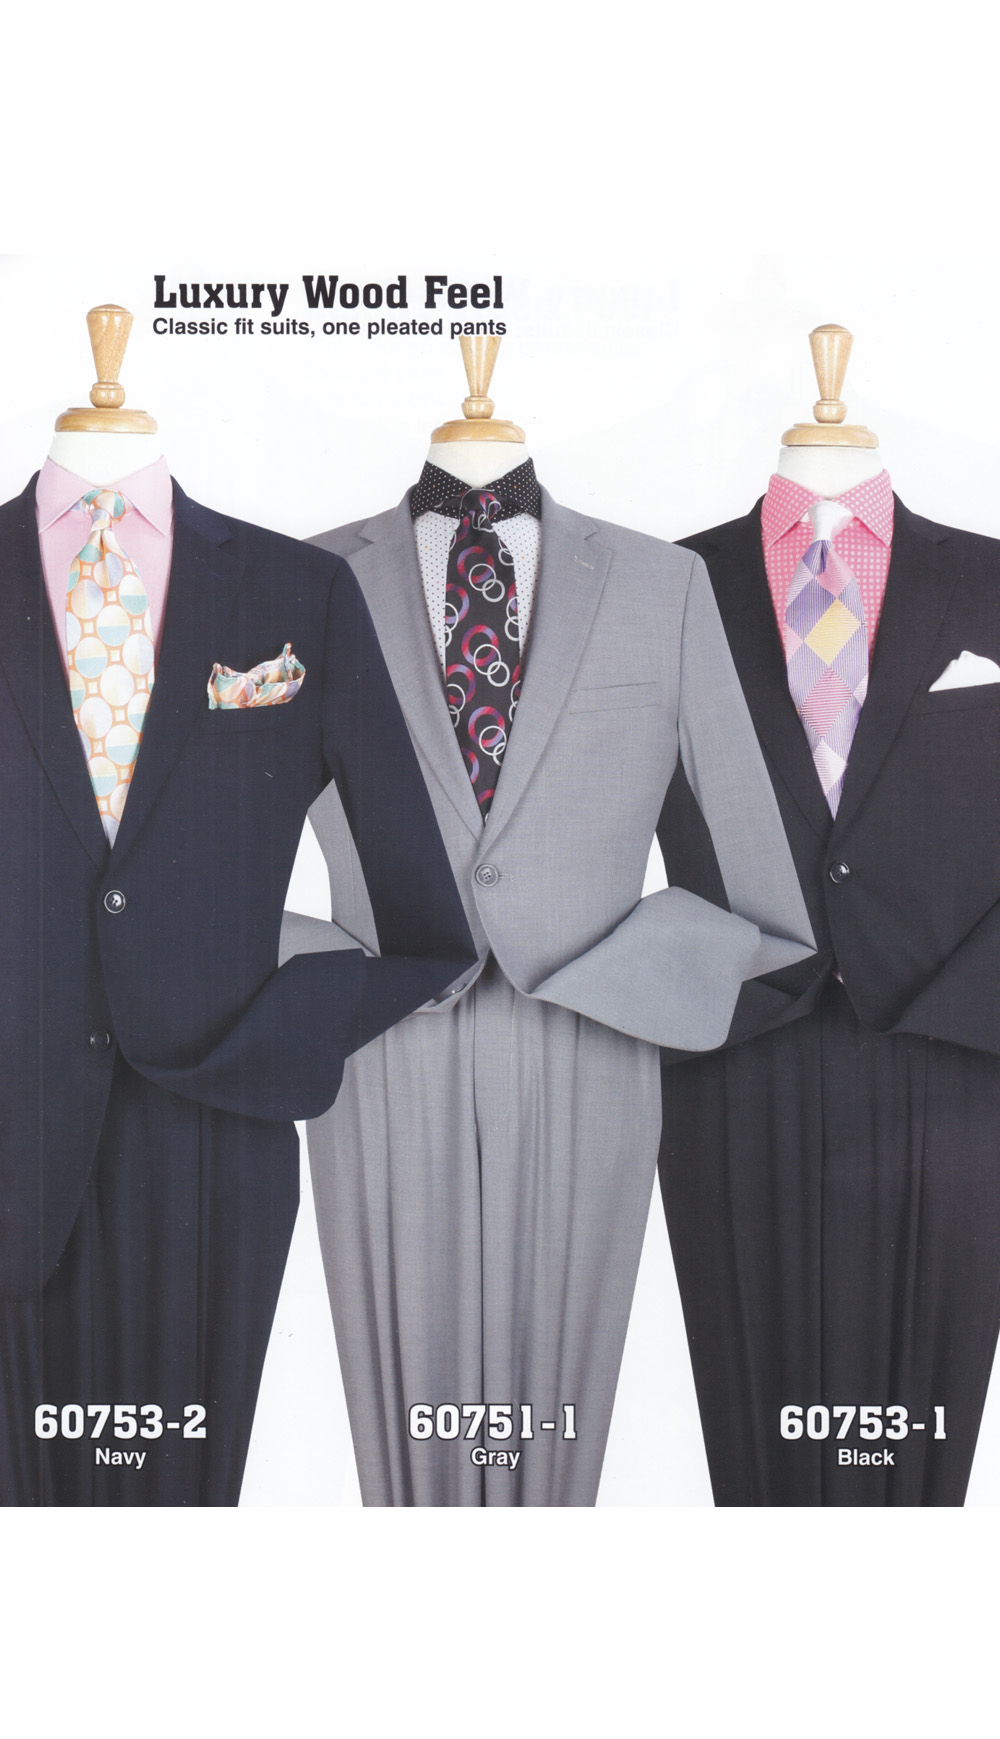 High Fashion Men Suits 60751-1